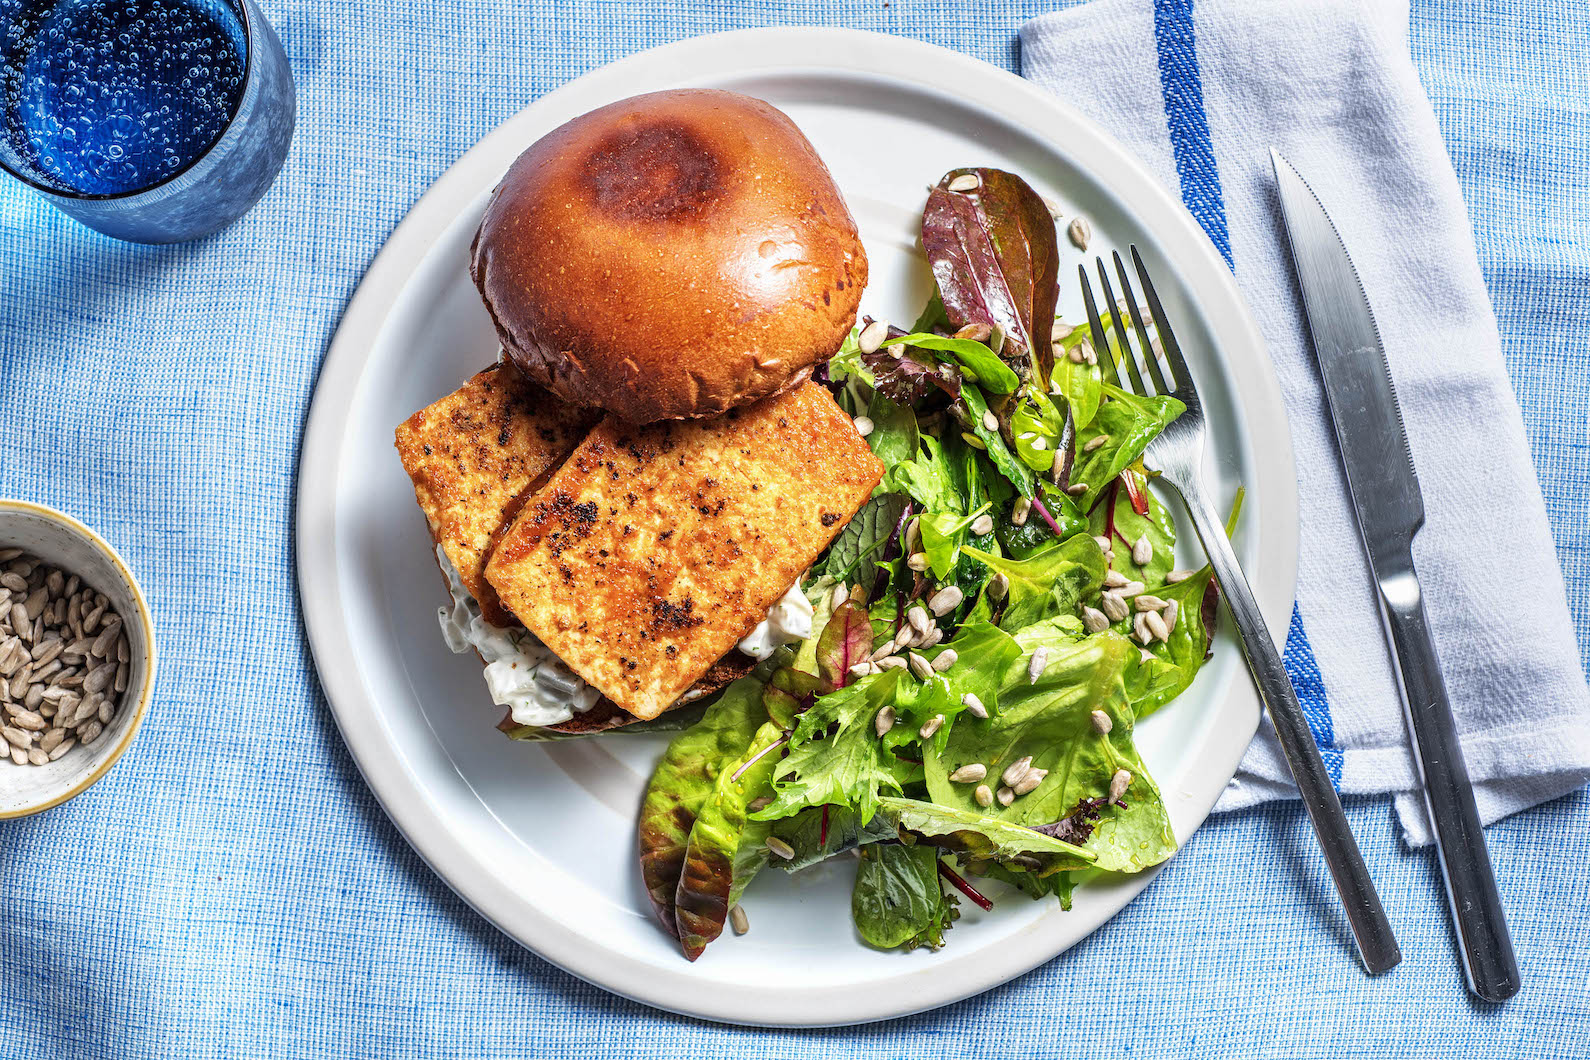 Buffalo Tofu Sandwiches with a baby green salad and dill mayo,